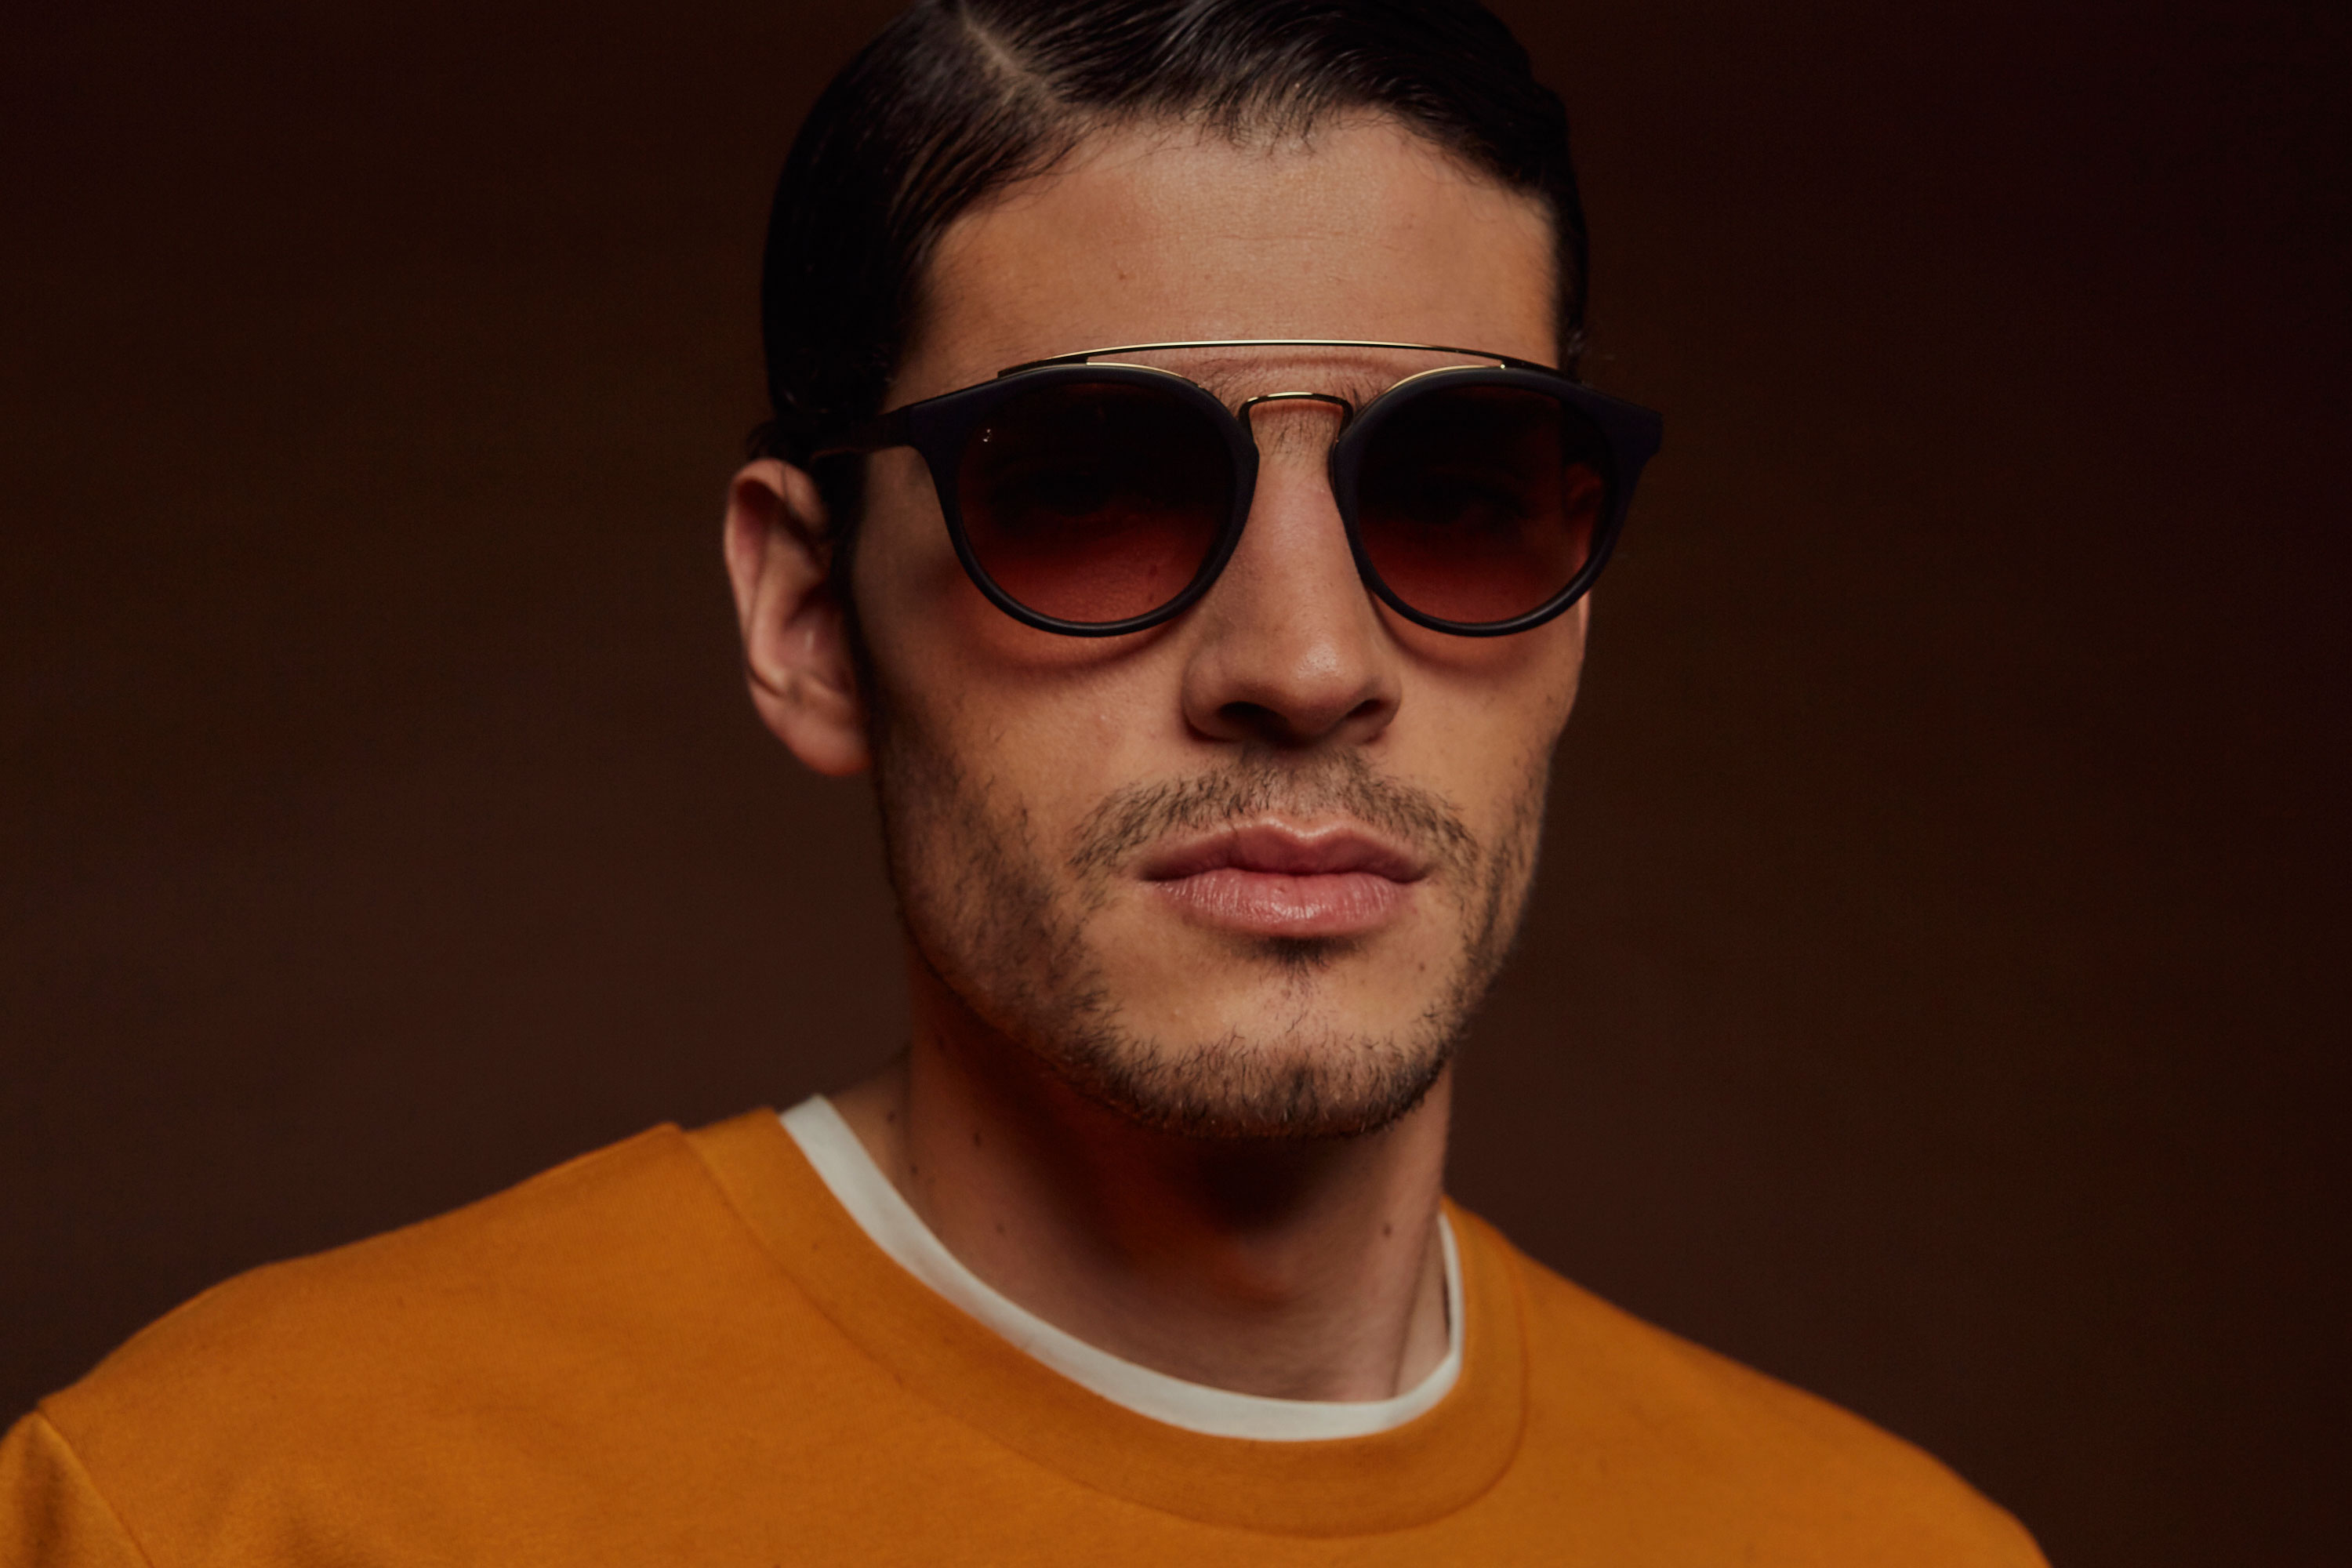 Bukowski acetate/metal rounded tortoise sunglasses by GIGI Studios